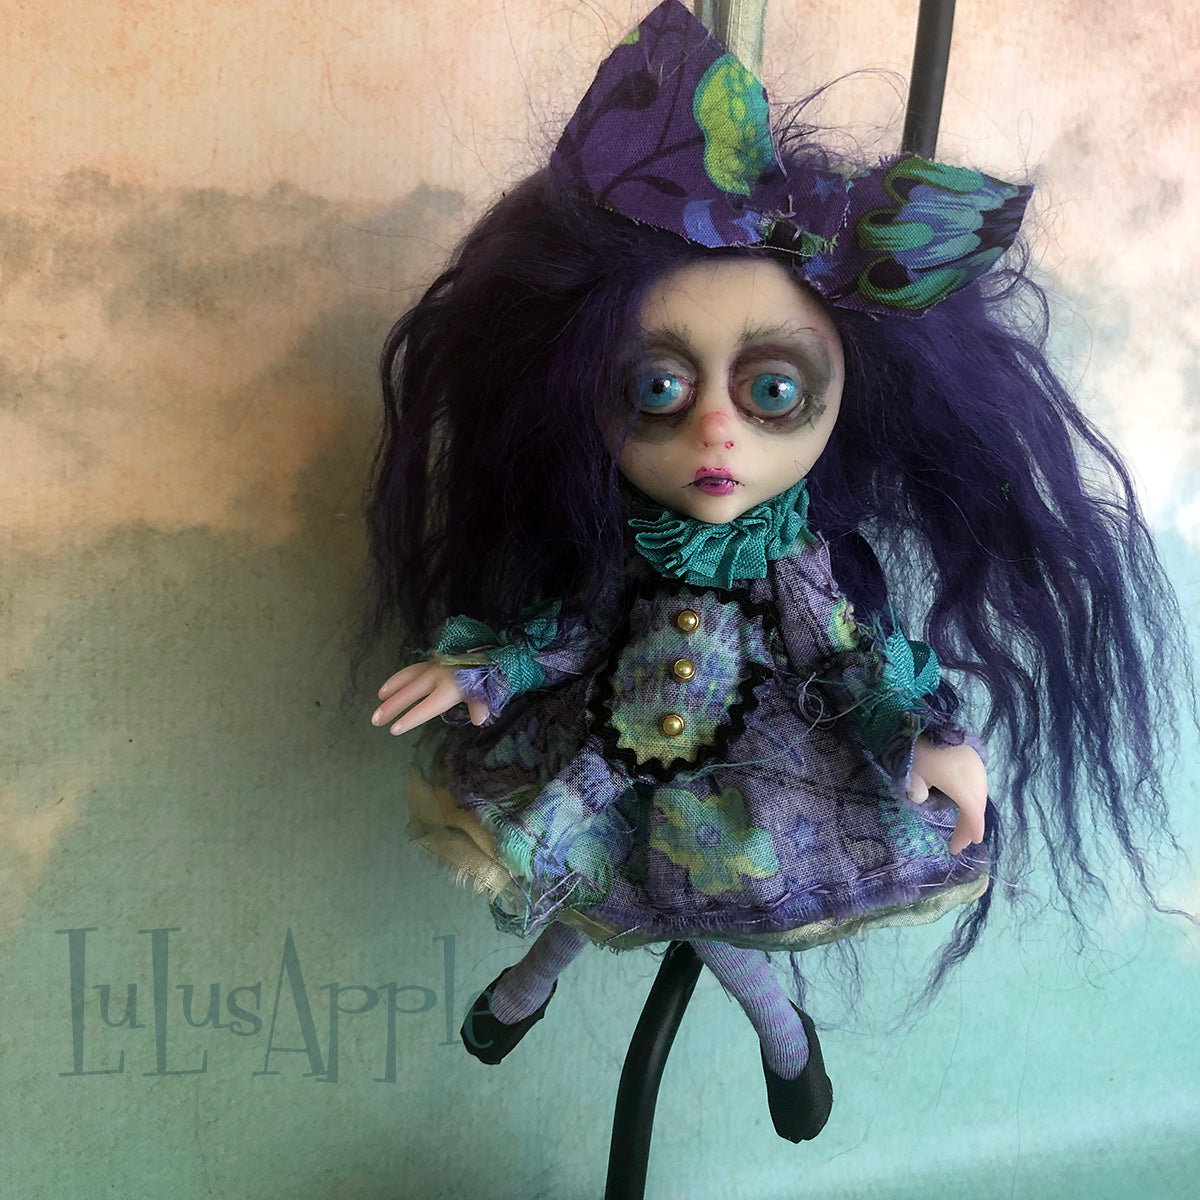 Jade Mini Hanging ornament OOAK LuLusApple Art Doll